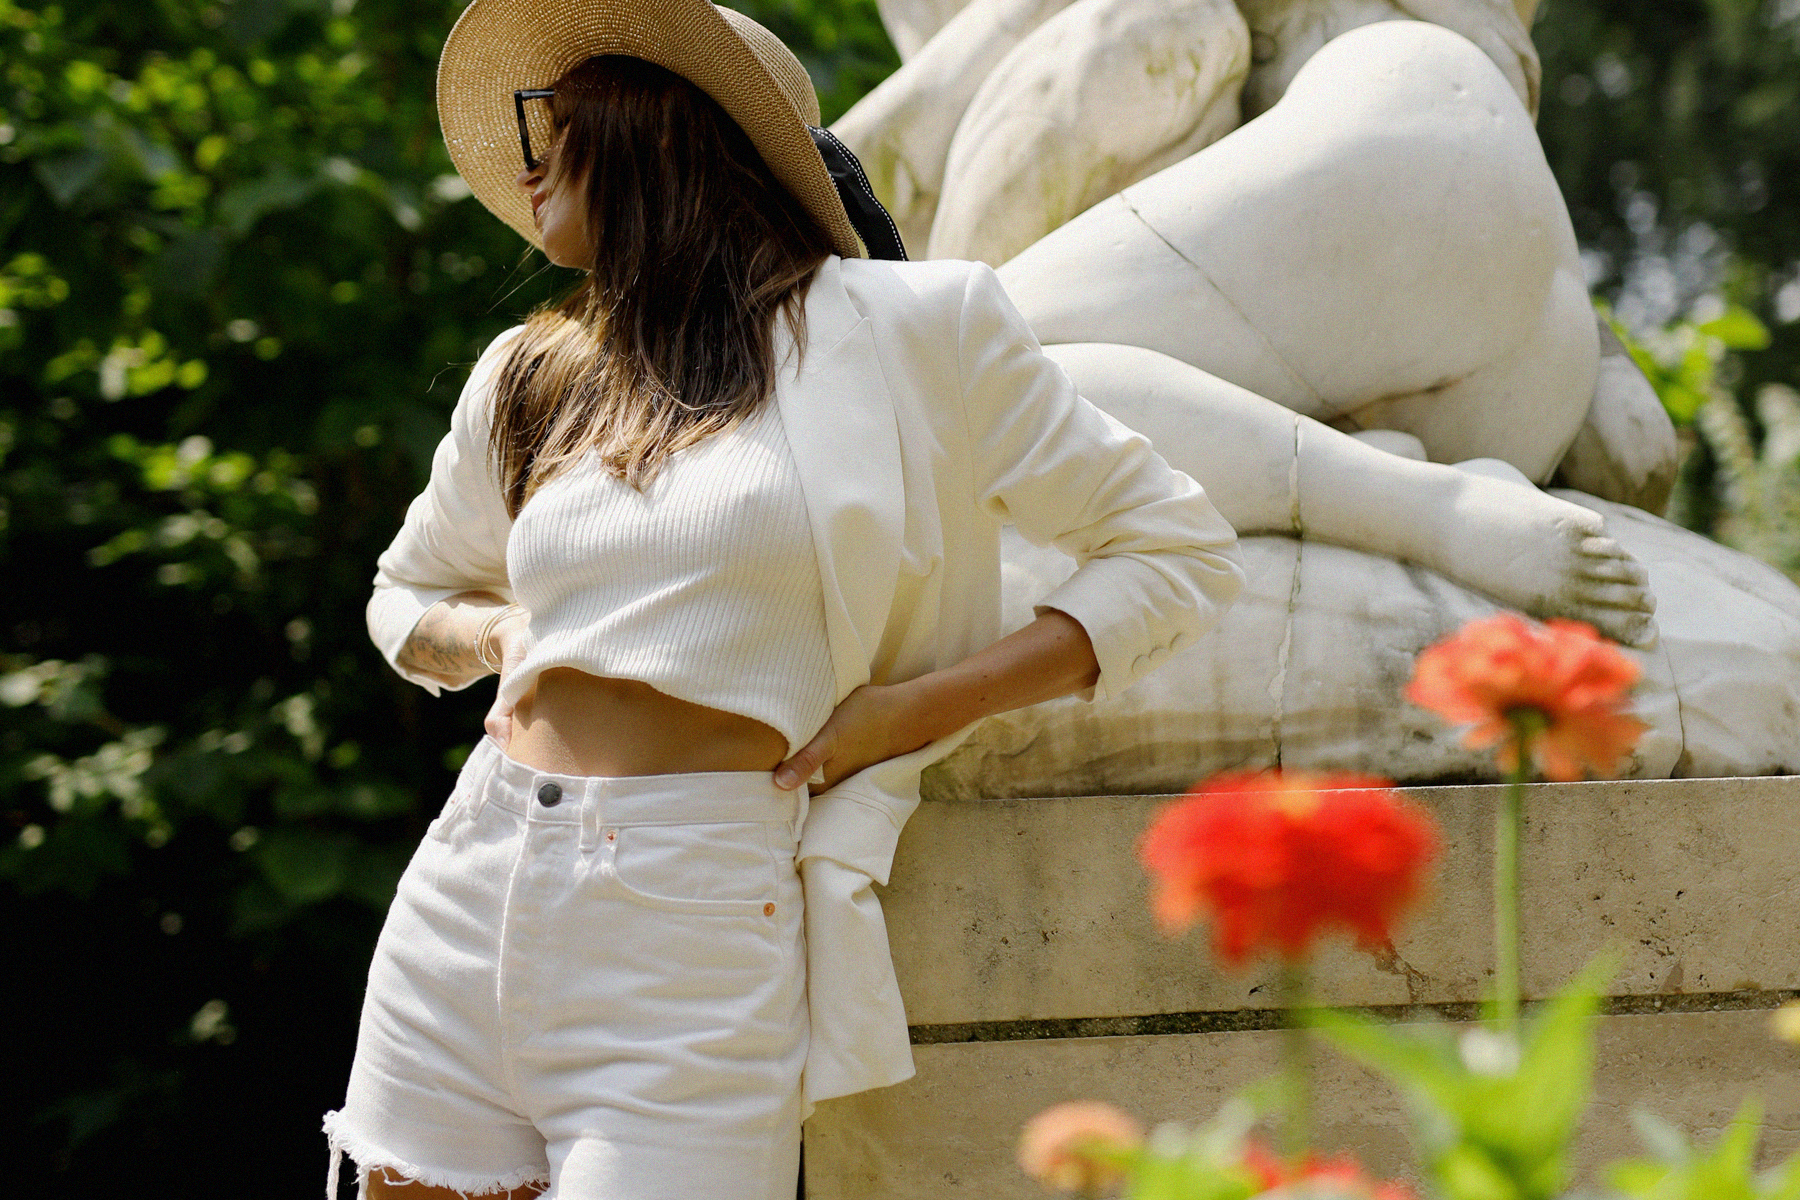 all white & other stories shorts blazer straw hat summer bag rouje hermes oran sandals statue marble dusseldorf düsseldorf dus art artist artsy fashionblogger modeblog jane birkin jeanne damas outfit mode inspiration look seventies ricarda schernus 8